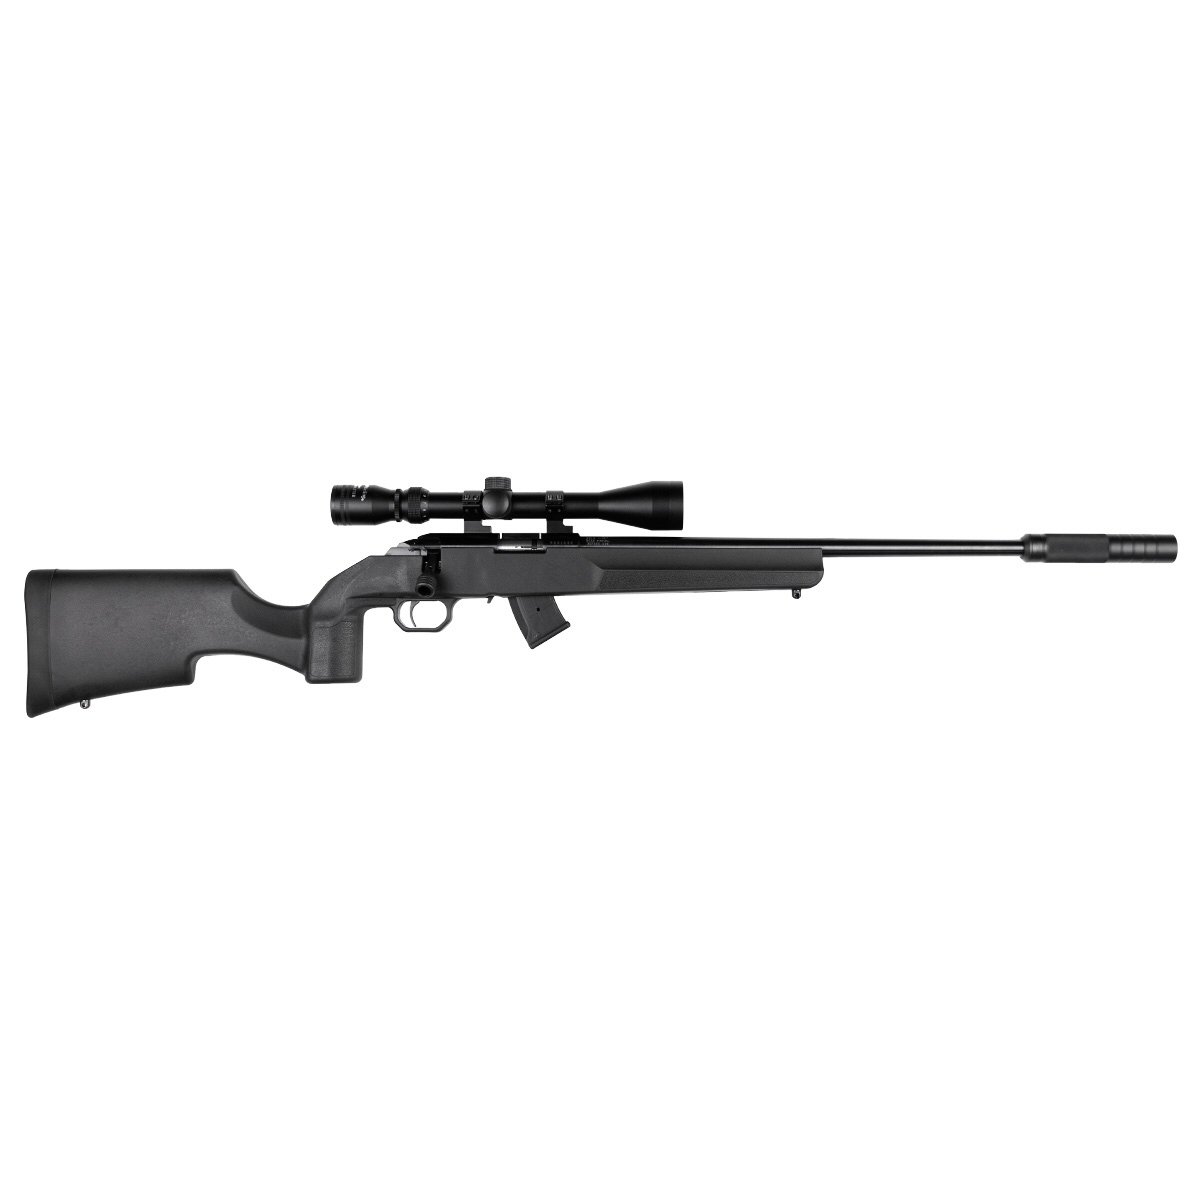 Howa M1100 22LR Scoped Suppressed Package